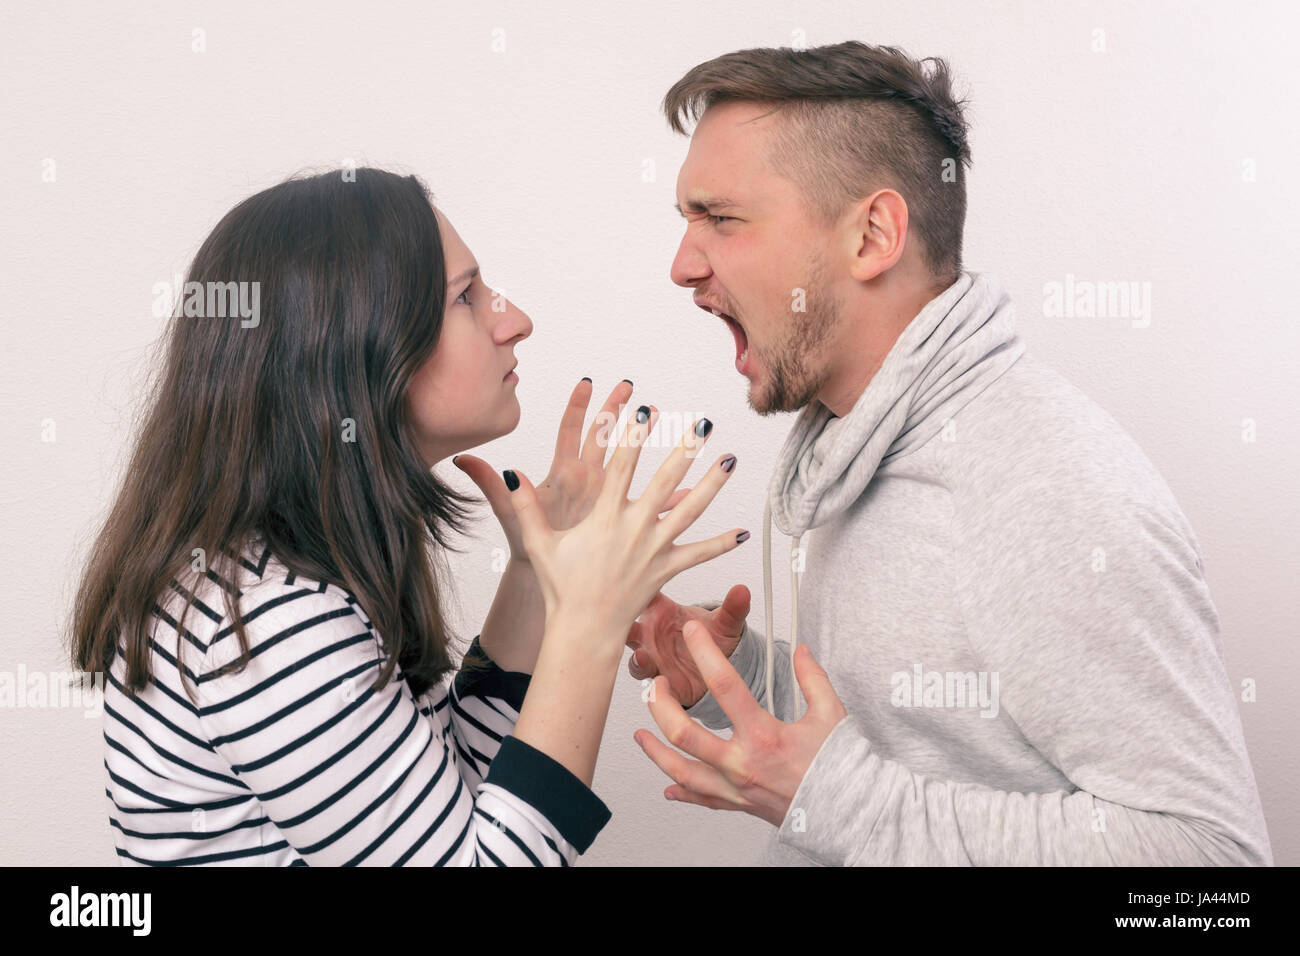 Young pair of lovers quarrel. Man and woman emotionally yelling at each other - Stock Image